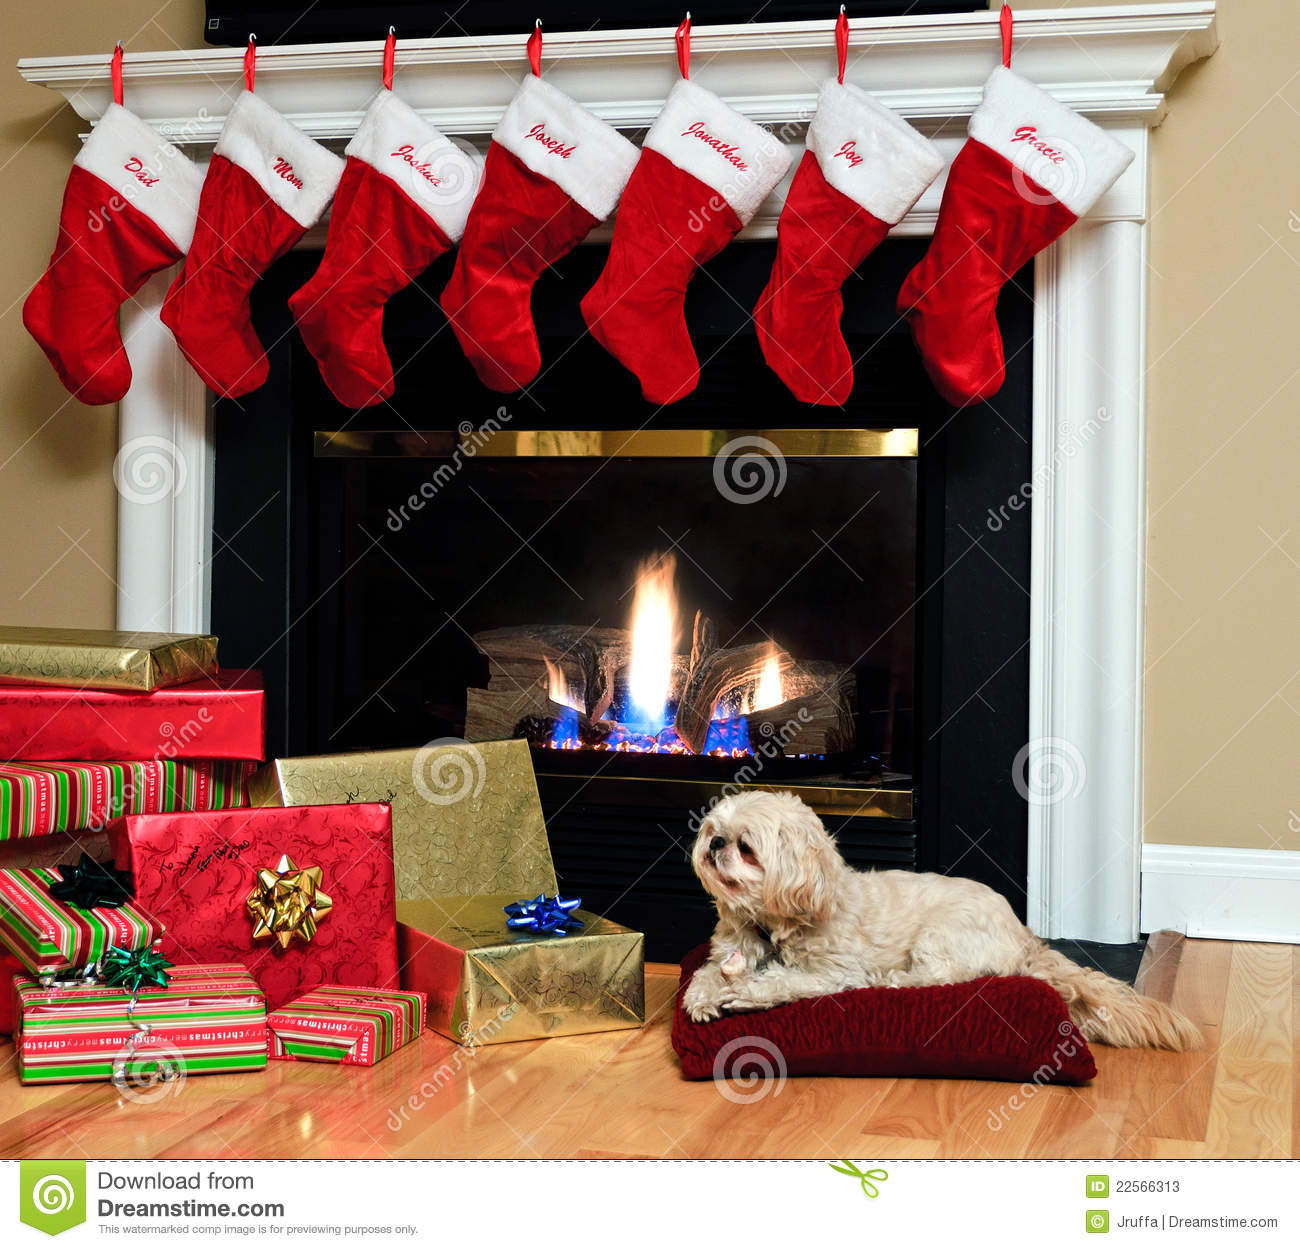 christmas stockings by the fireplace stock image image of saint stocking 22566313. Black Bedroom Furniture Sets. Home Design Ideas